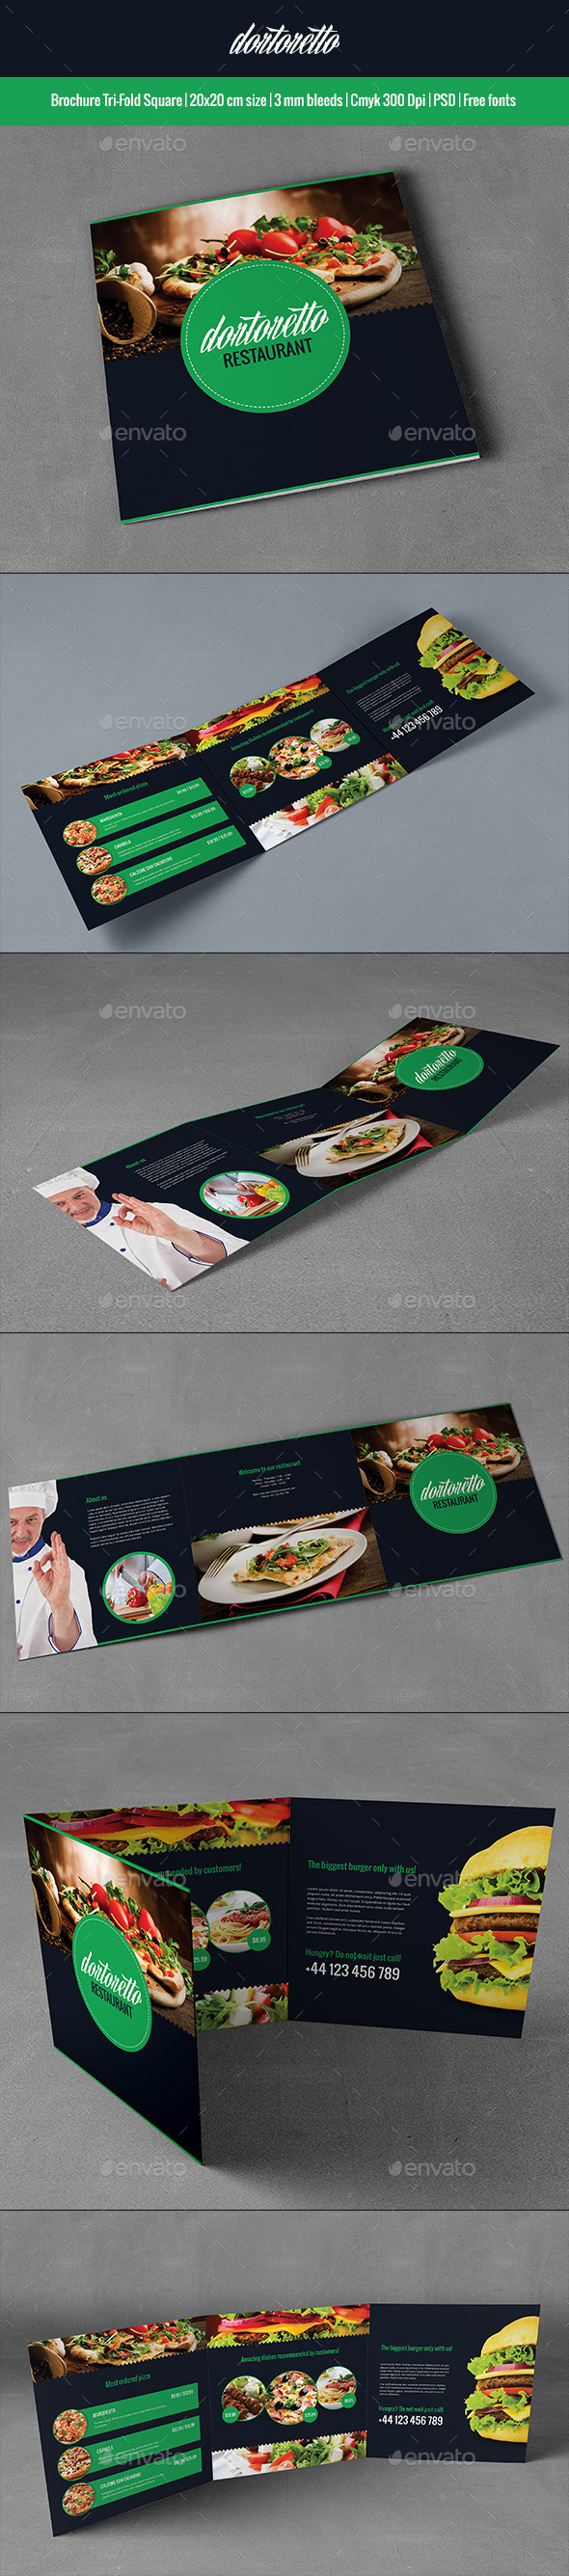 GraphicRiver Dortoretto Brochure Tri-Fold Square 8989171